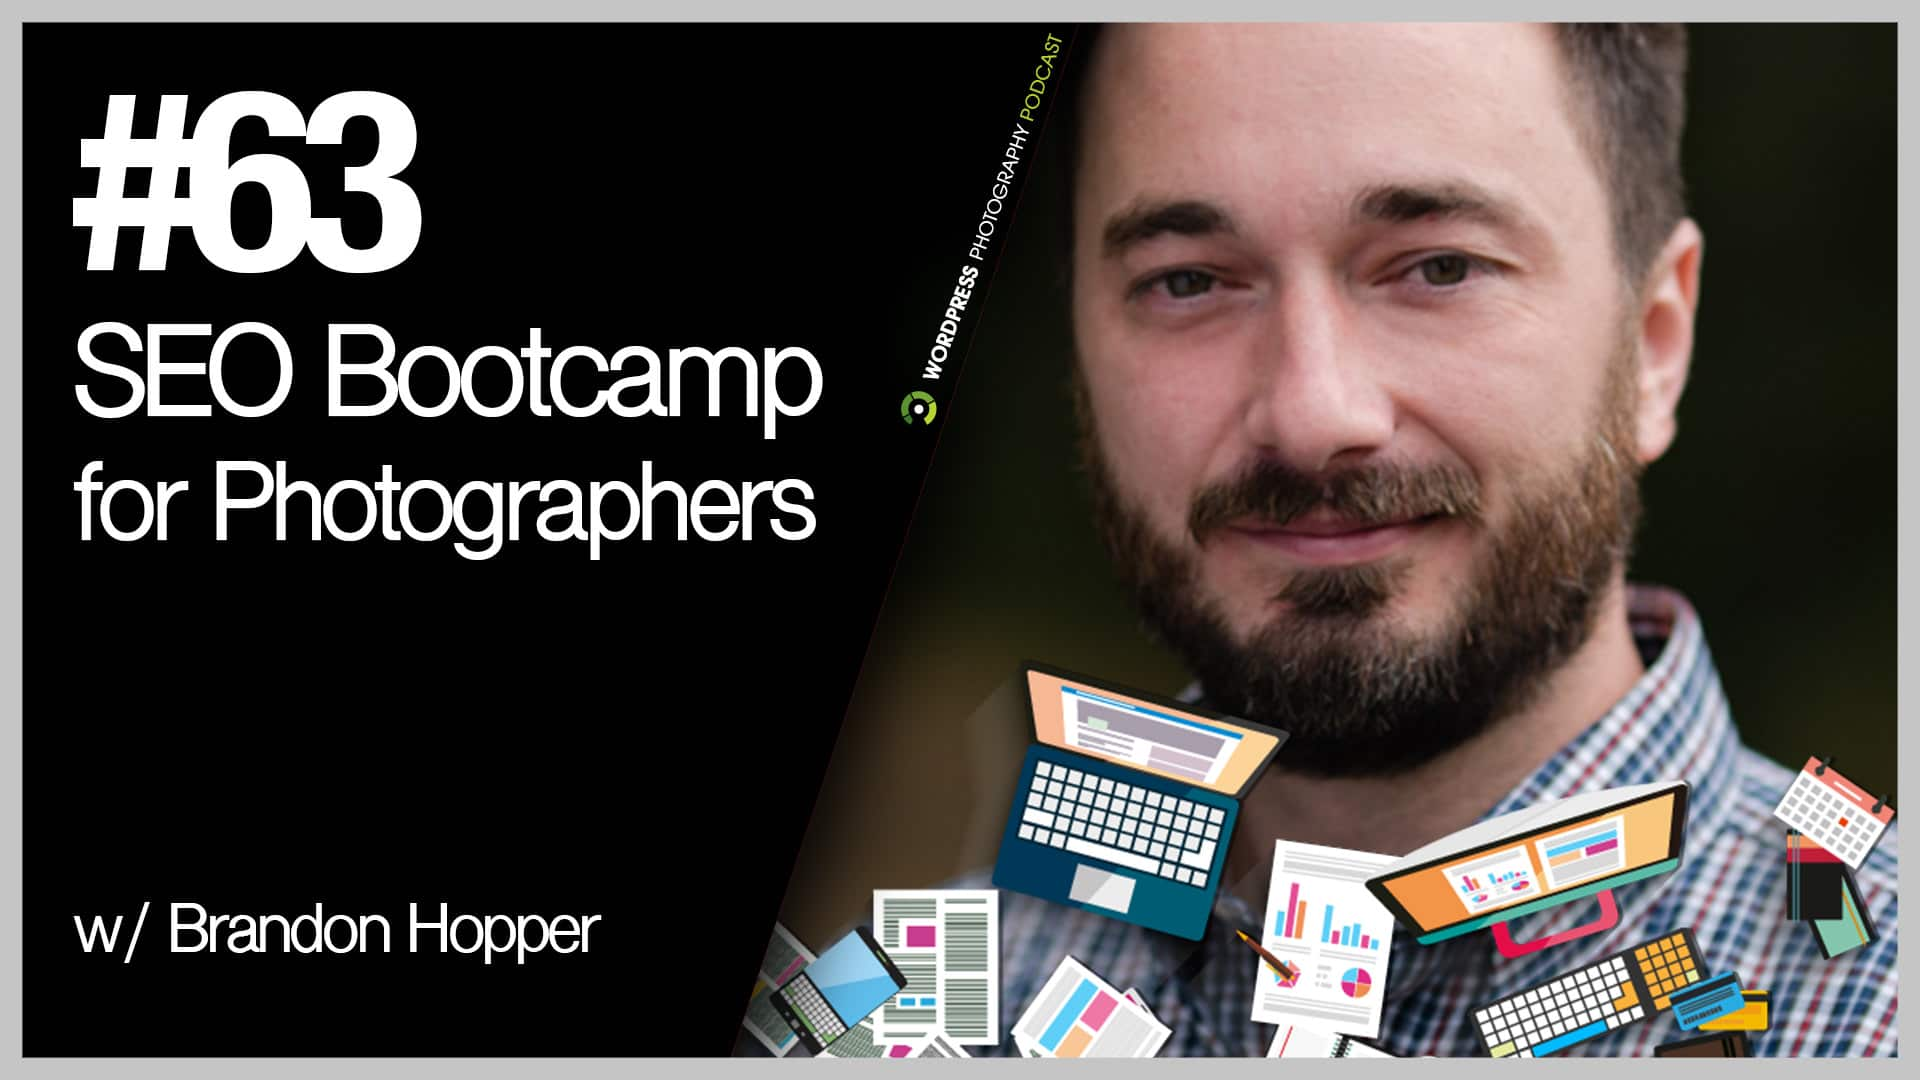 Episode 63 – SEO Bootcamp for Photographers w/ Brandon Hopper